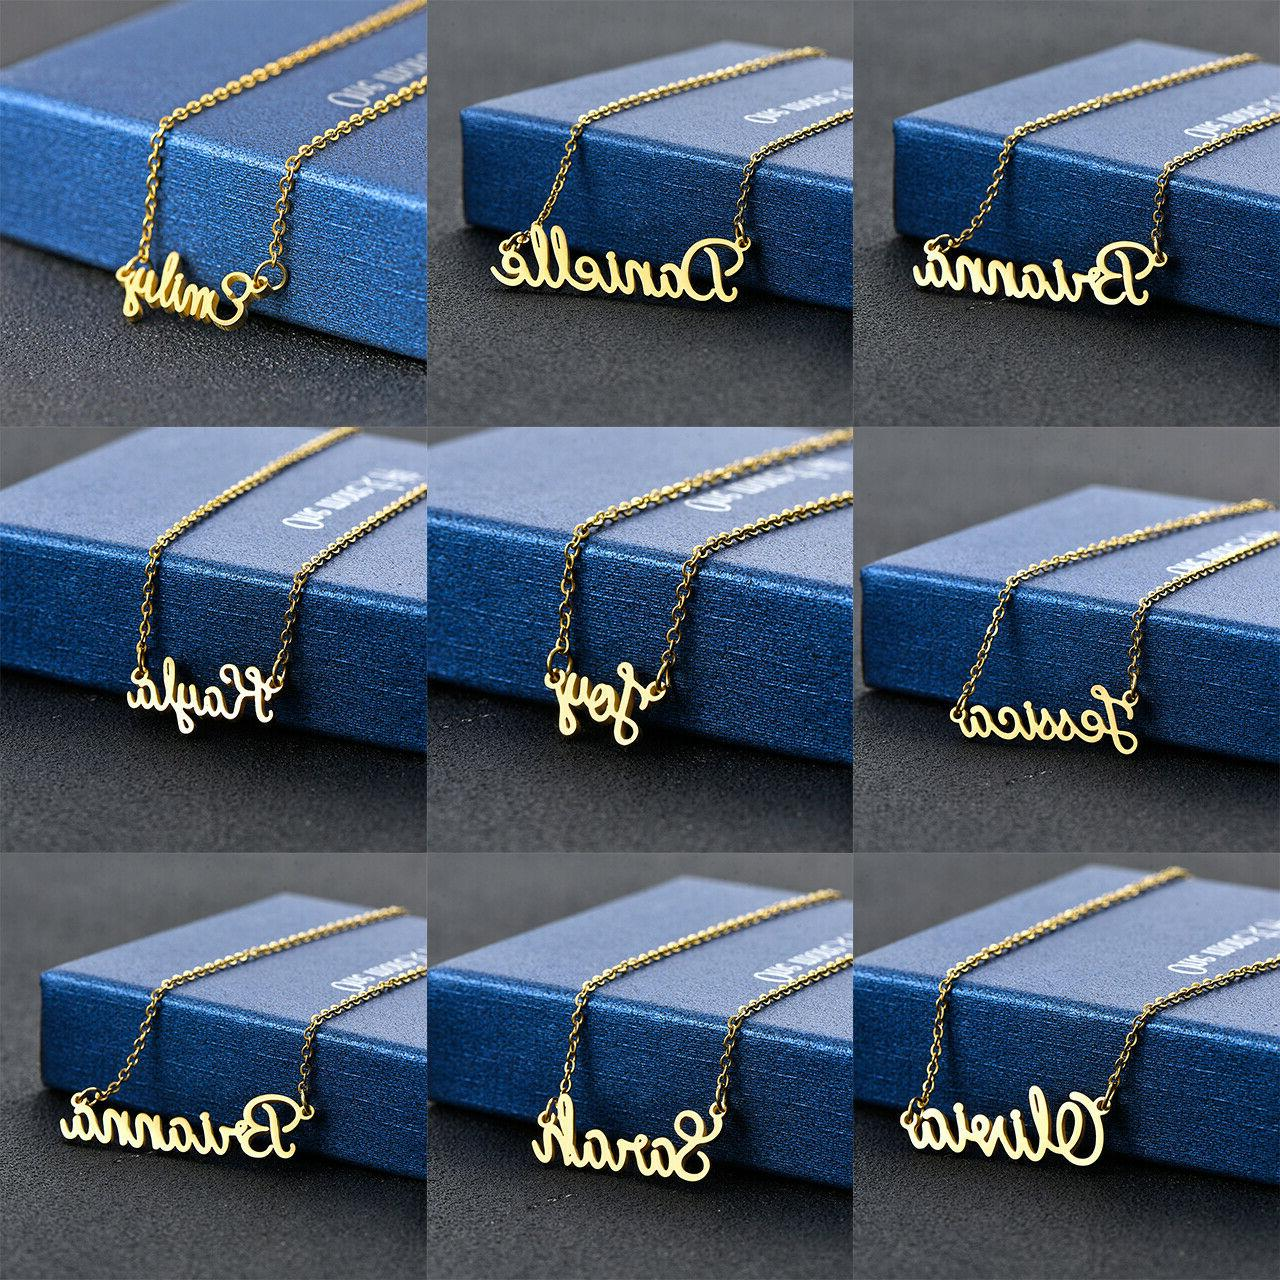 stainless steel lettering letters pendant chain name